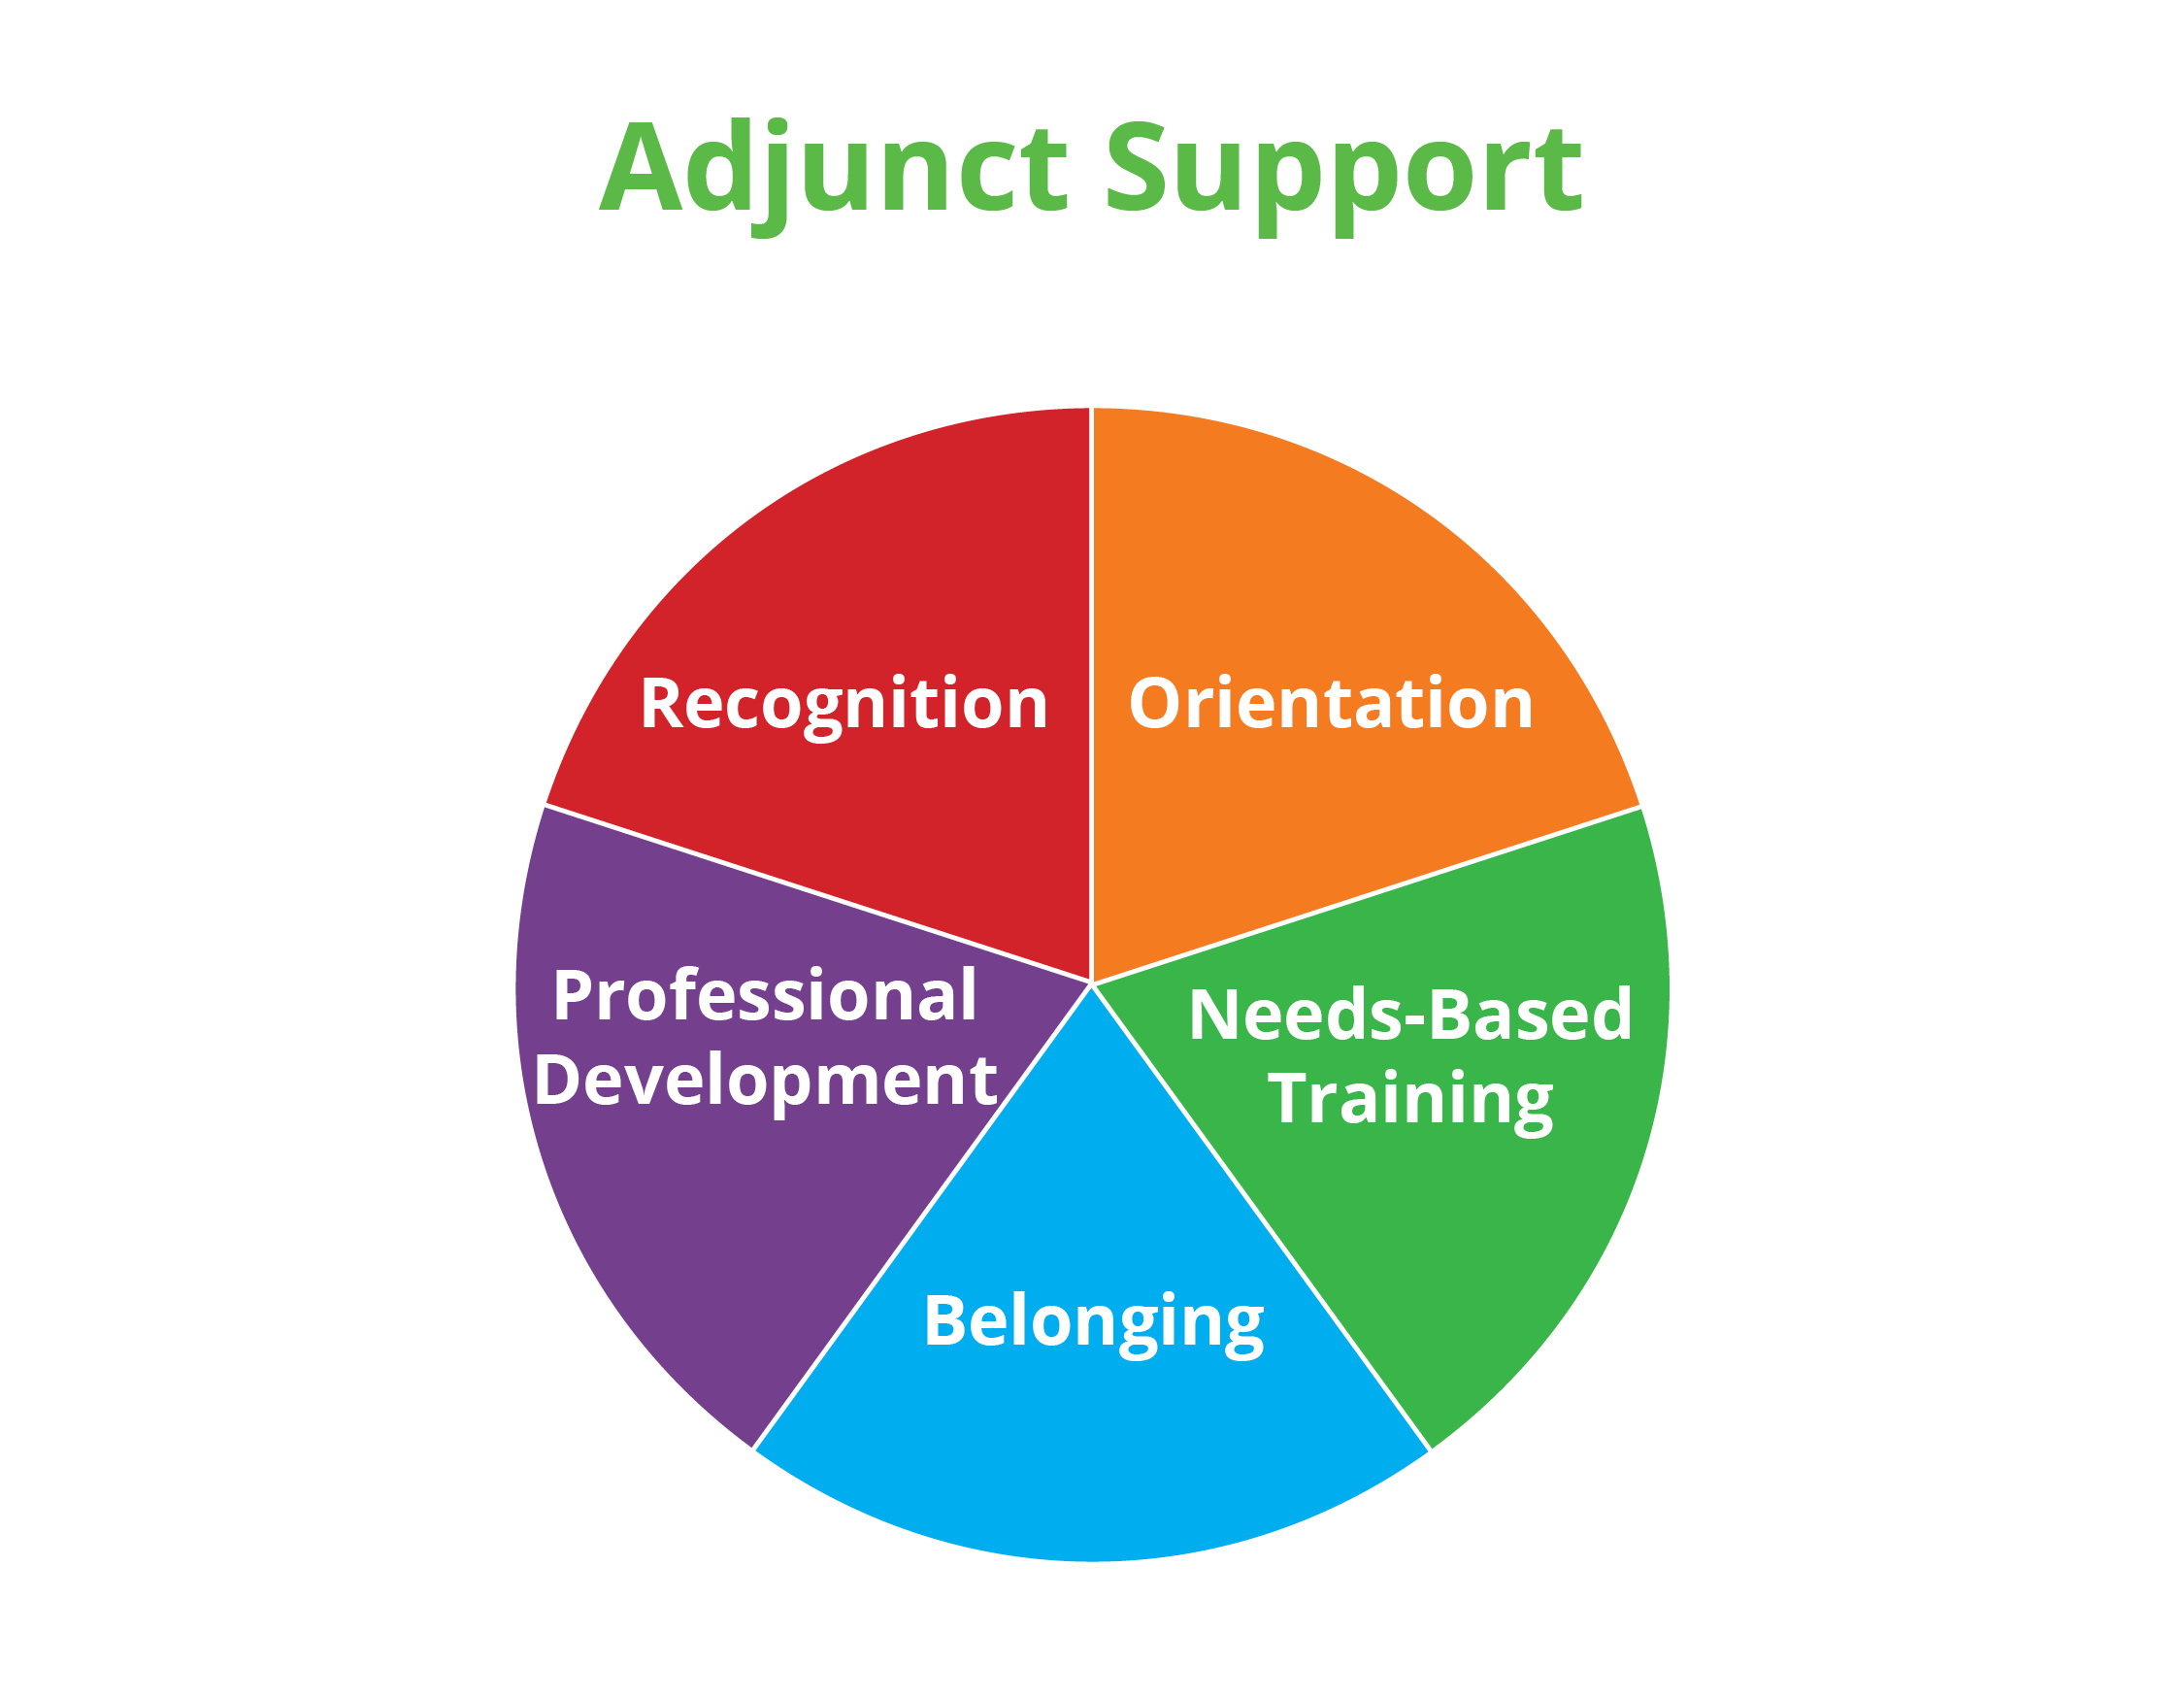 5 Forms of Support for Adjunct Faculty